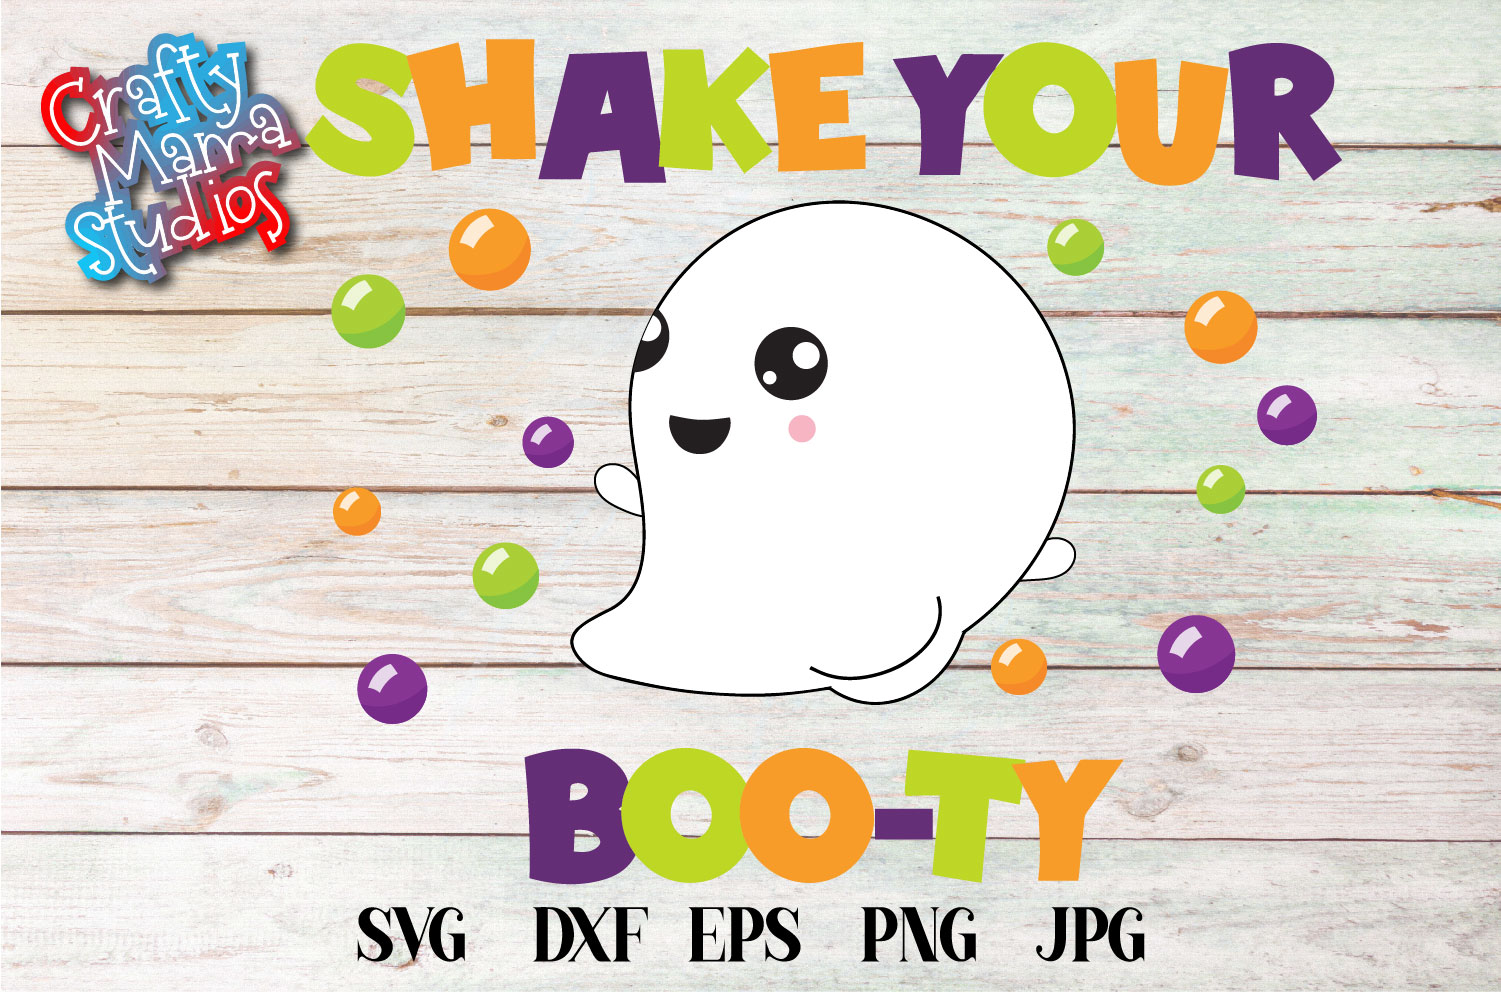 Shake Your Booty SVG Sublimation, Halloween Ghost SVG example image 2